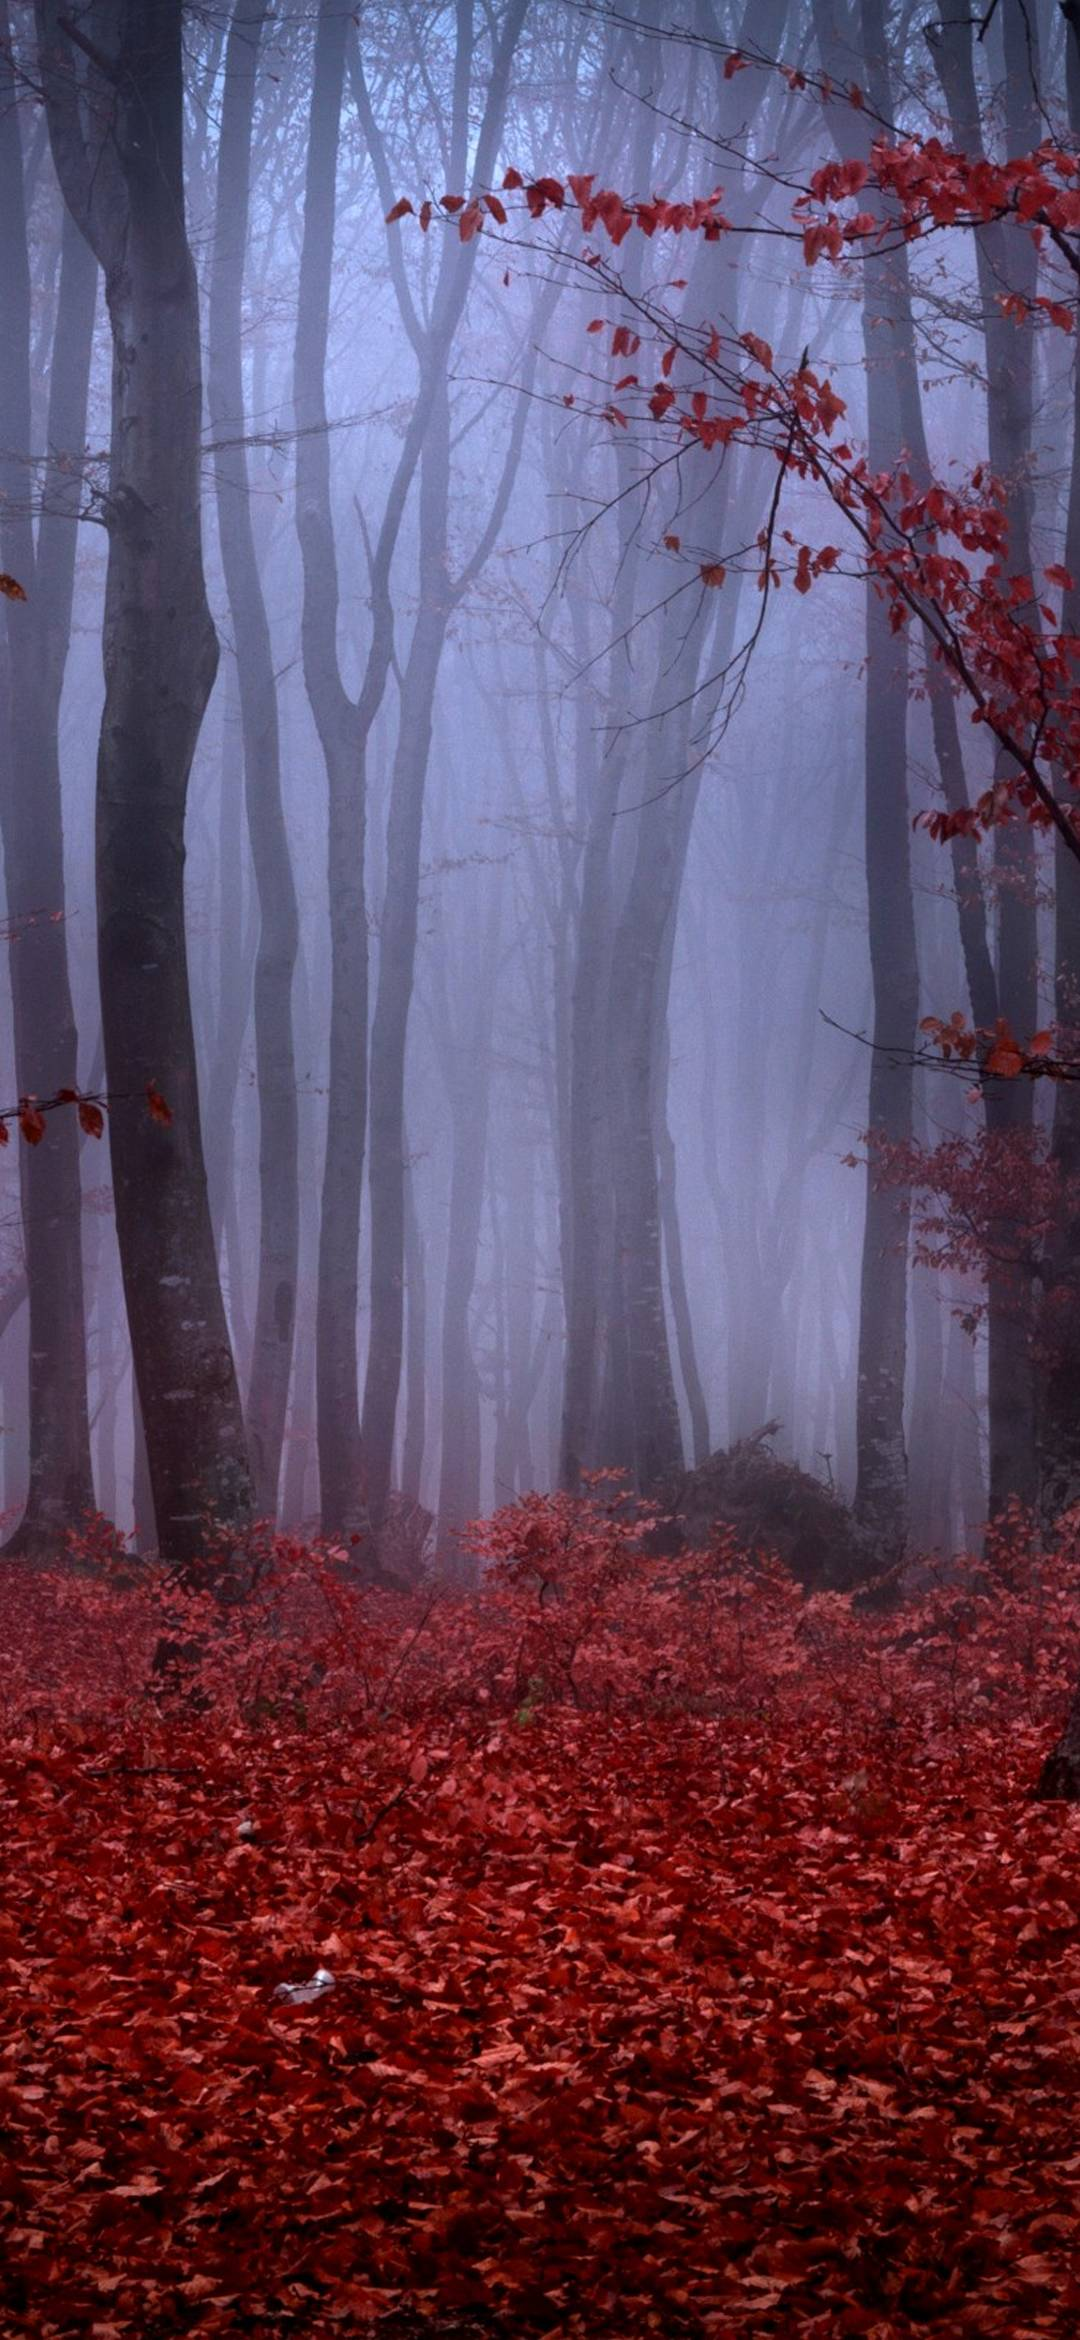 Whatsapp Car Wallpaper Download Forest Fog Autumn Trees Branches 1080x2340